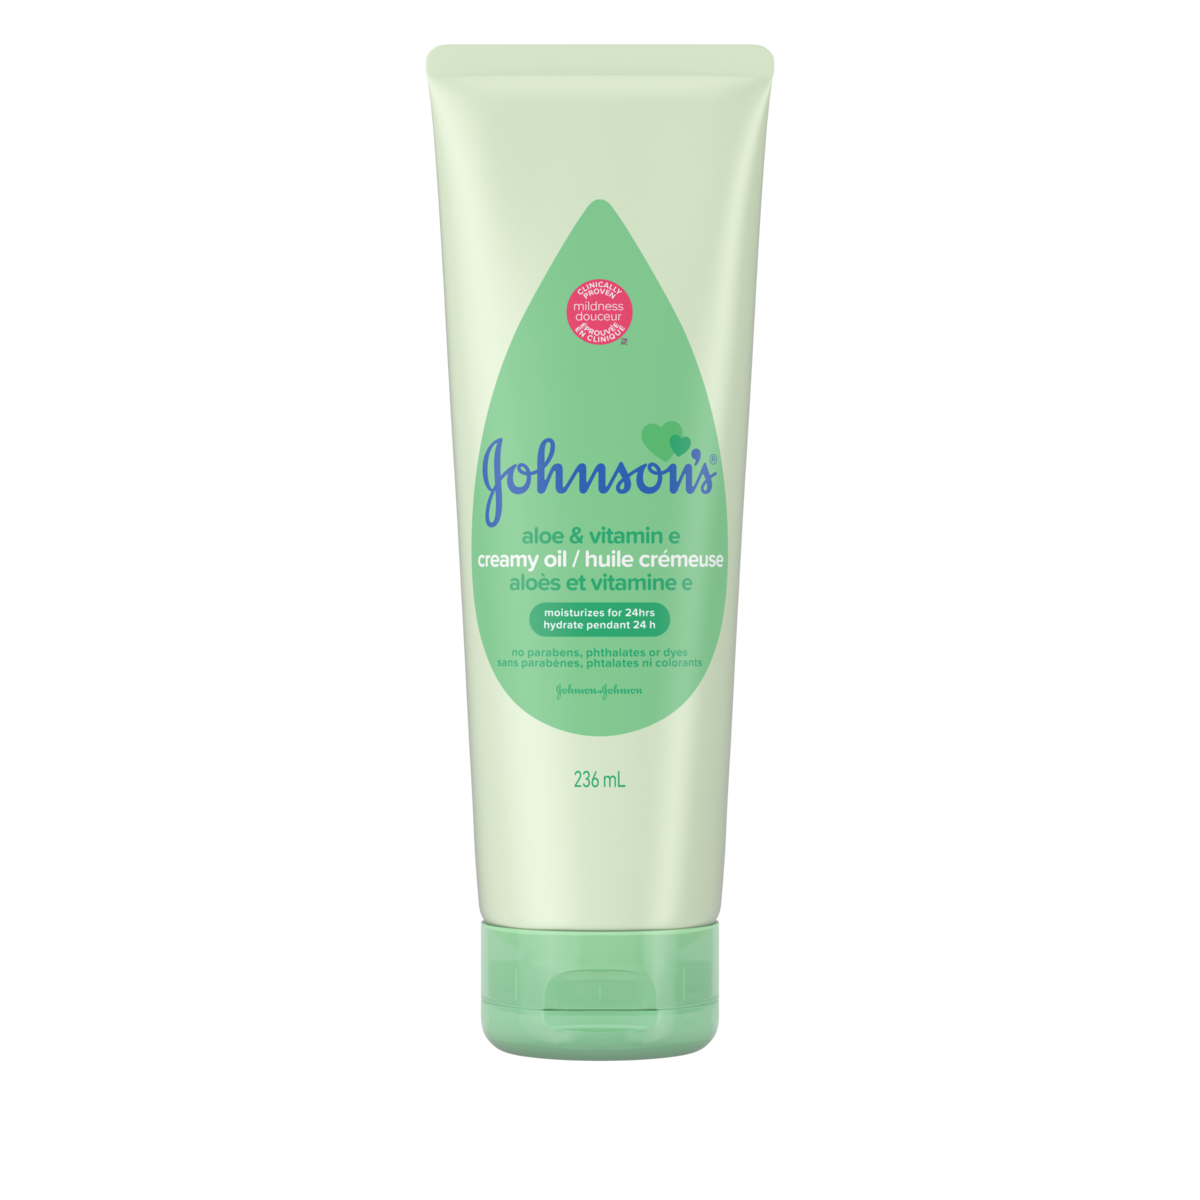 Jonhson's Aloe and Vitamin E Creamy Oil